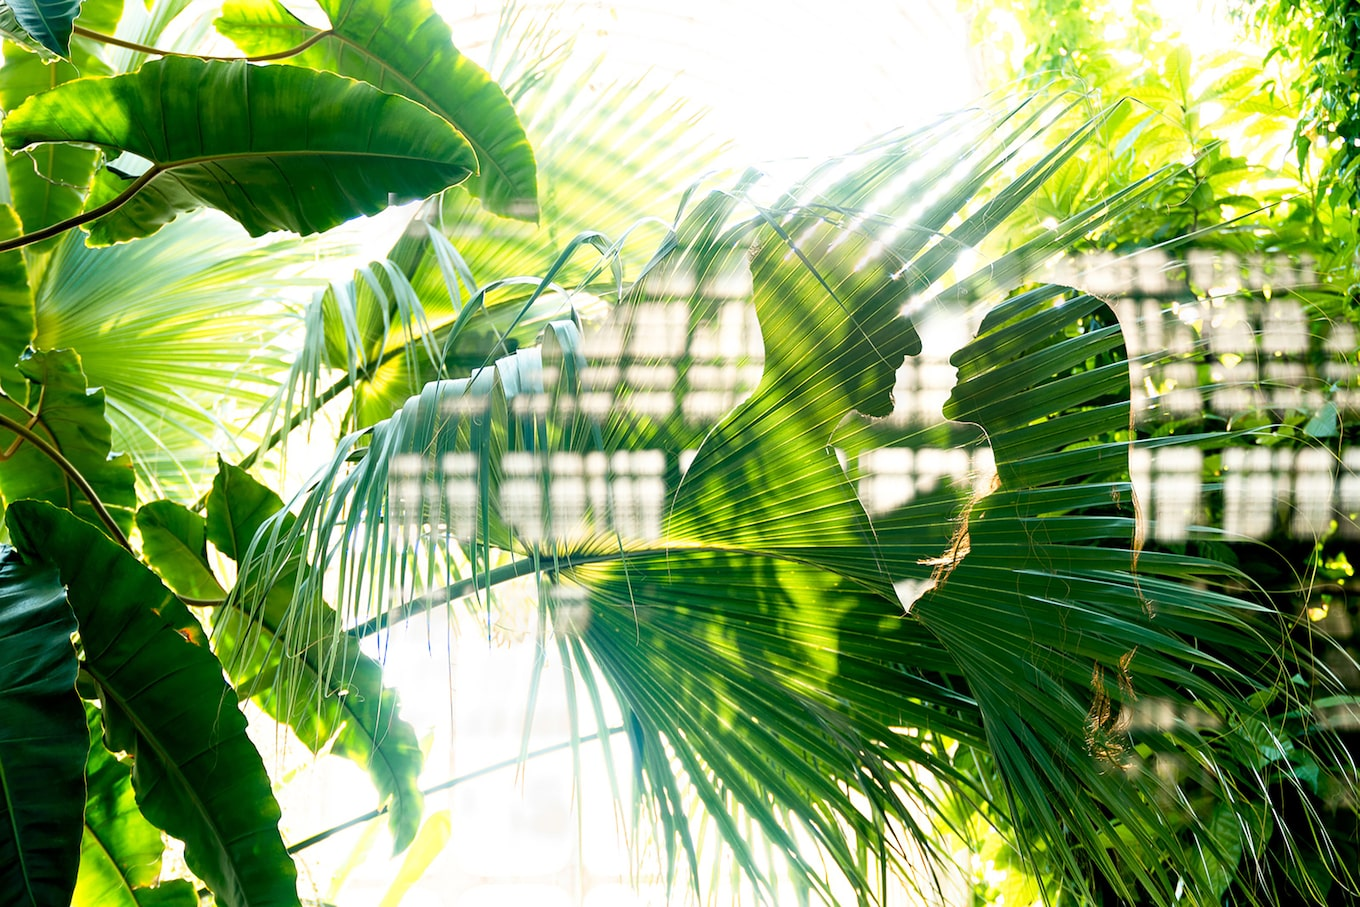 kate-hopewell-smith-sony-alpha-9-reflection-of-bride-and-groom-with-ferns-forming-their-shapes